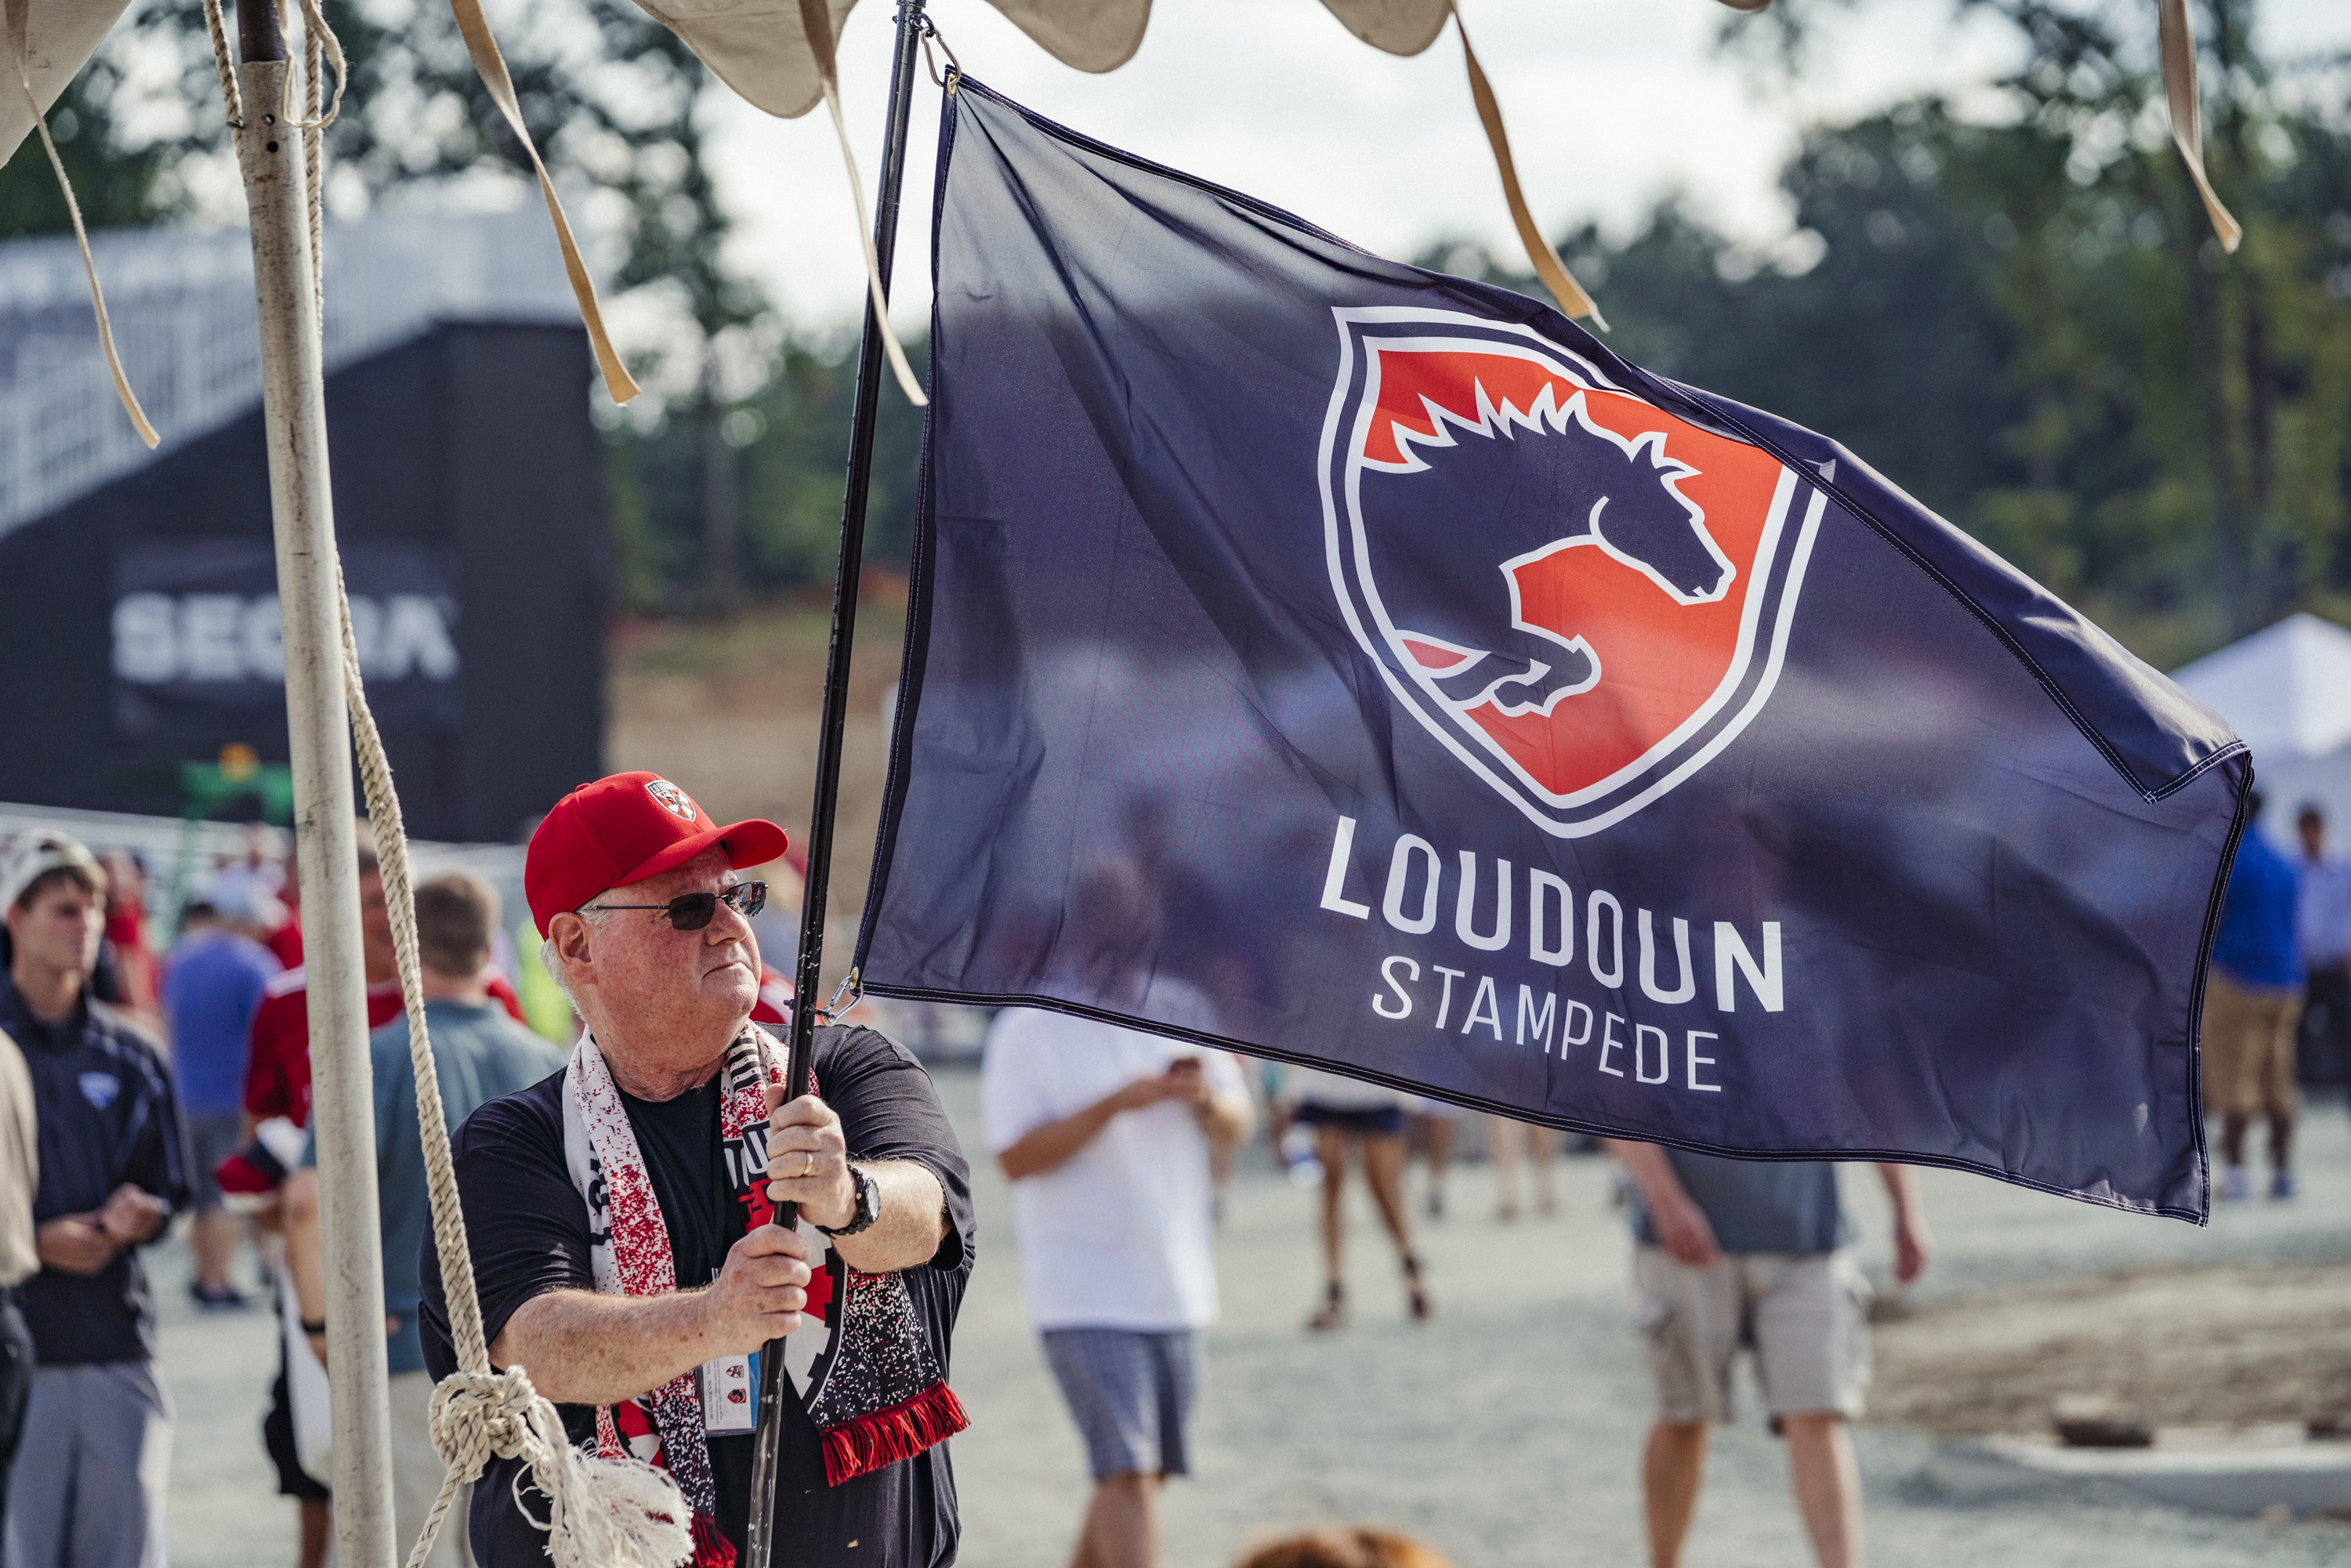 Loudoun United FC Set To Play First Game In New Leesburg